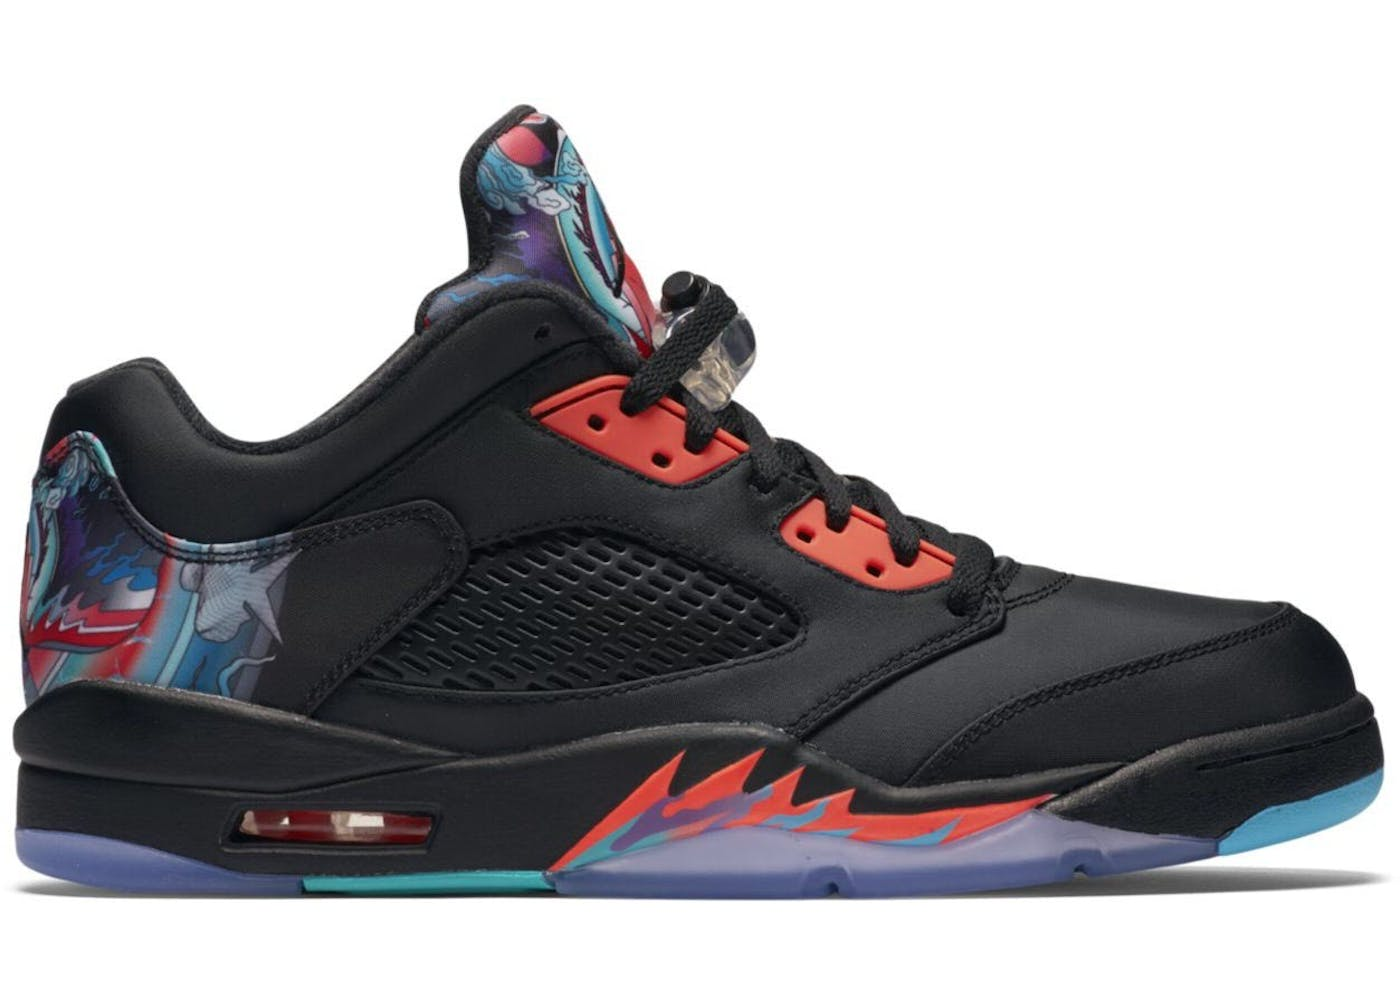 jordan 5 retro low chinese new year - Jordan Chinese New Year